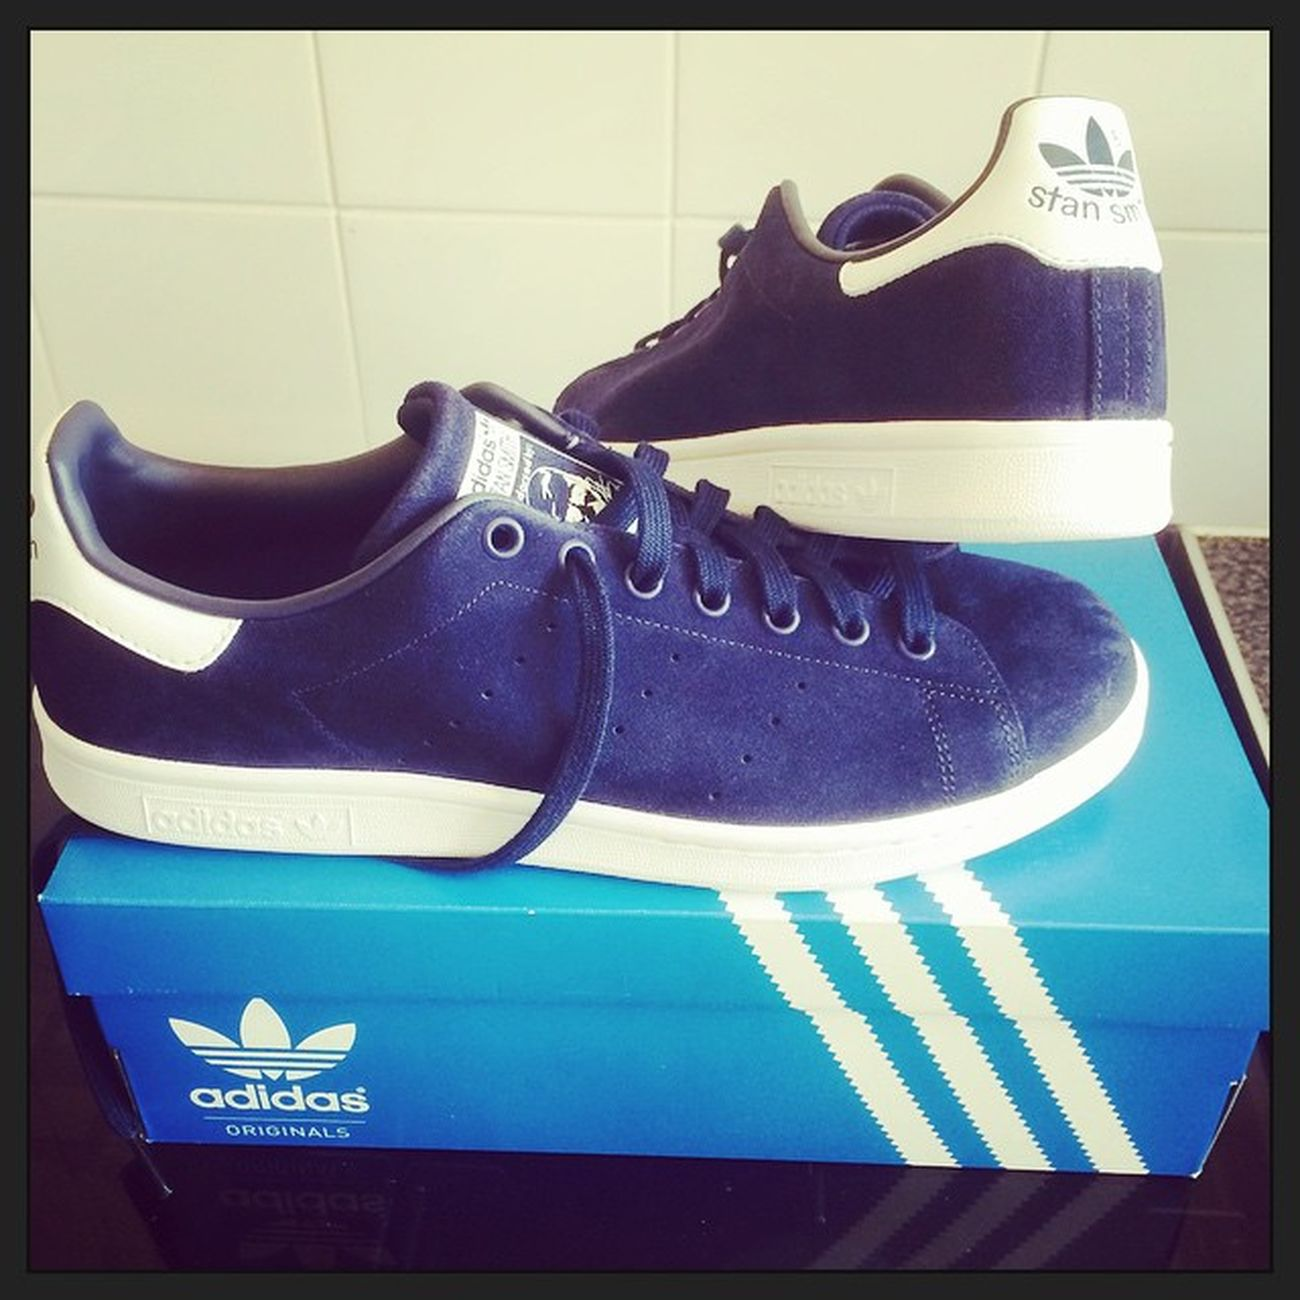 Nice bargain at the Adidas outlet store today £40 blue suede Stan smiths 😊 Adidas Adigod Adiporn Adidassler Adidasonly_ Adiobsessed AdidasStanSmith Newtrainers